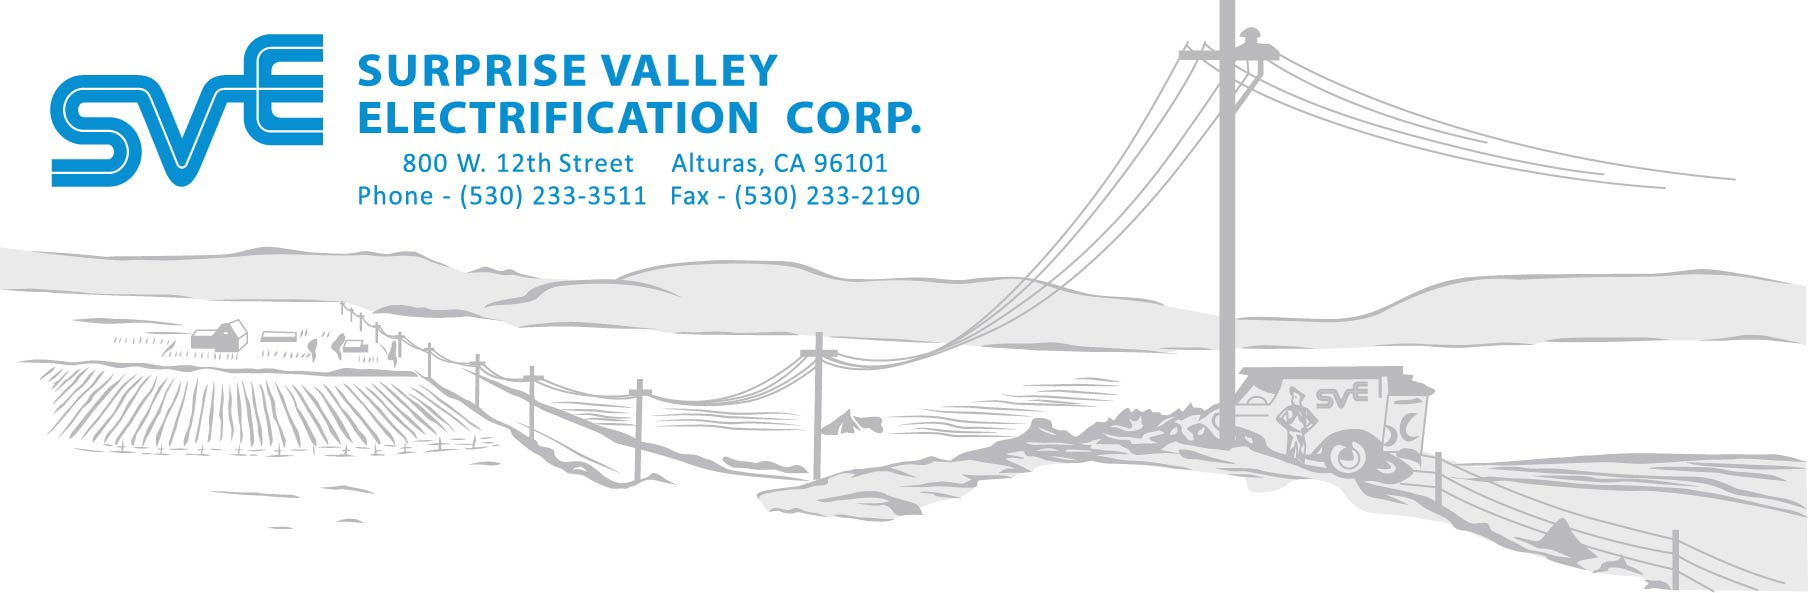 Surprise Valley Electric Corp. Logo